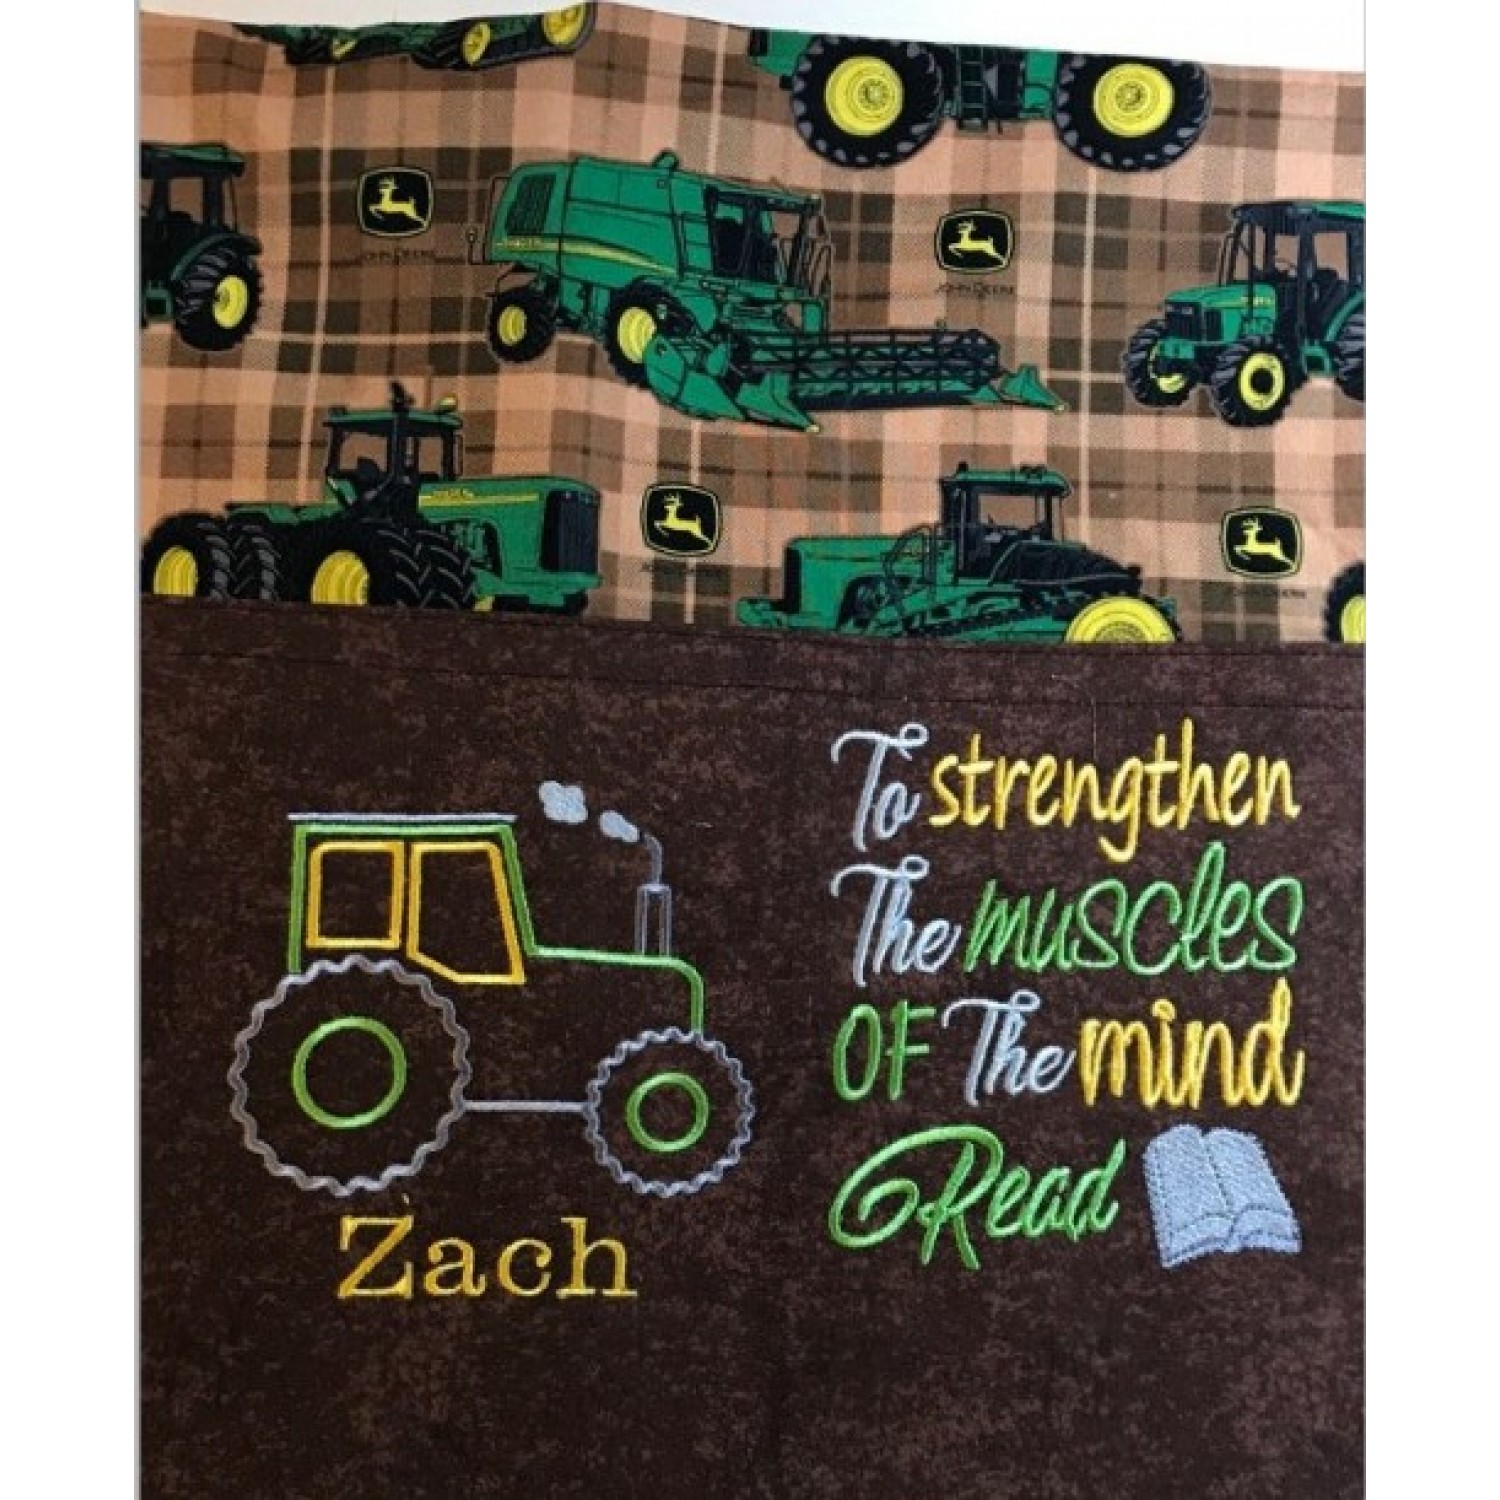 tractor applique with to strengthen